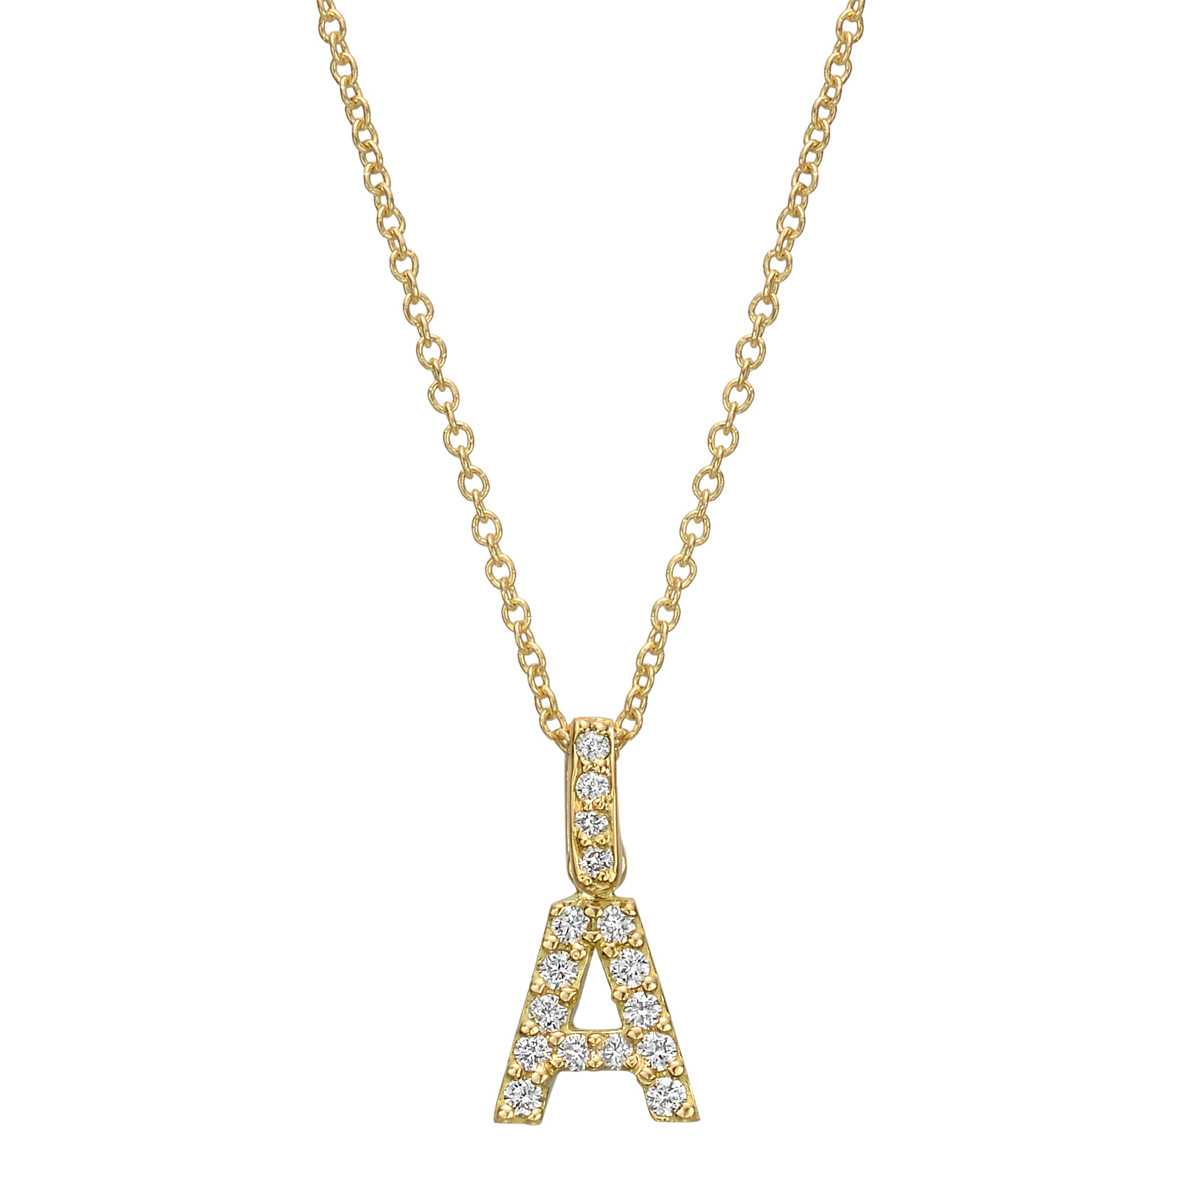 18k Yellow Gold & Diamond Letter 'A' Pendant